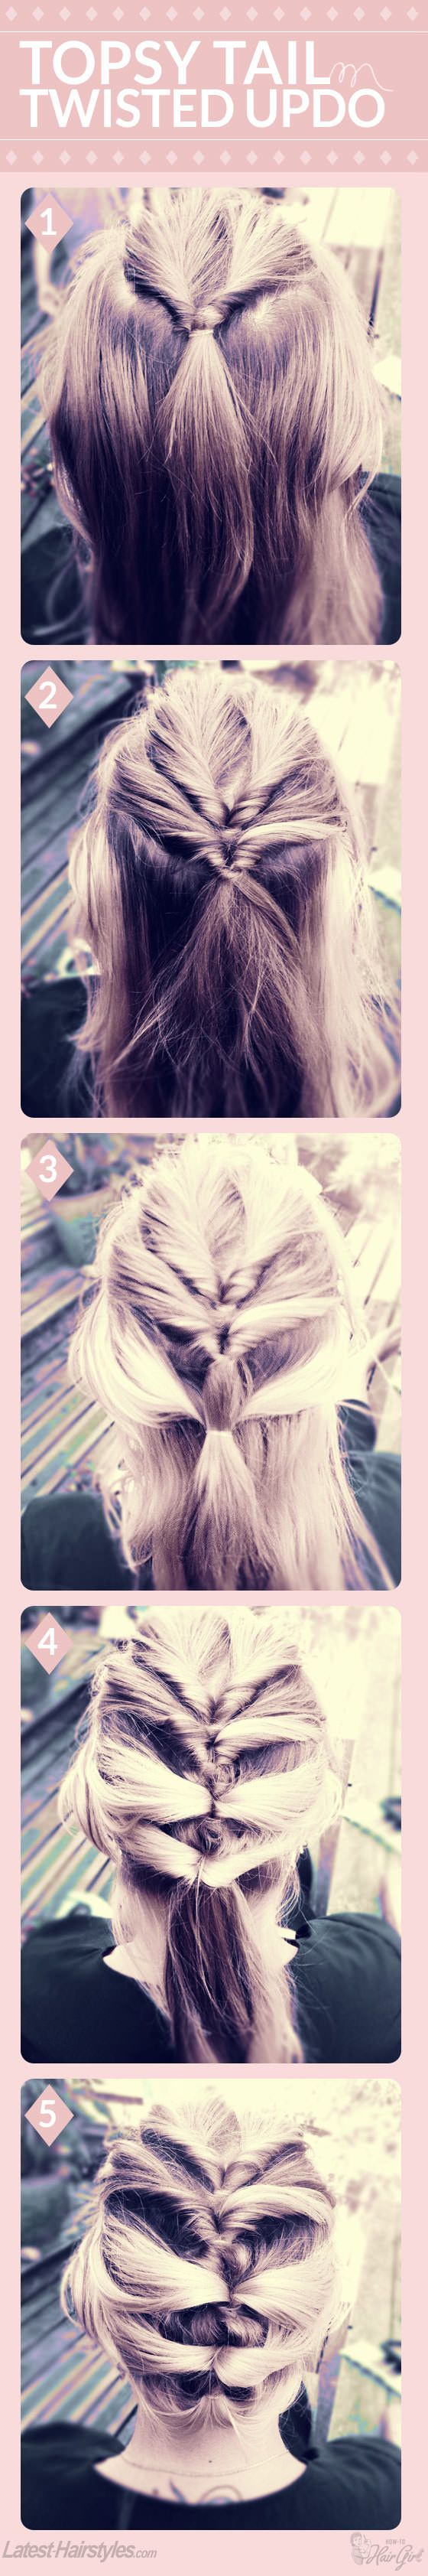 Topsy tail twisted hair tutorial hair ideas pinterest updo